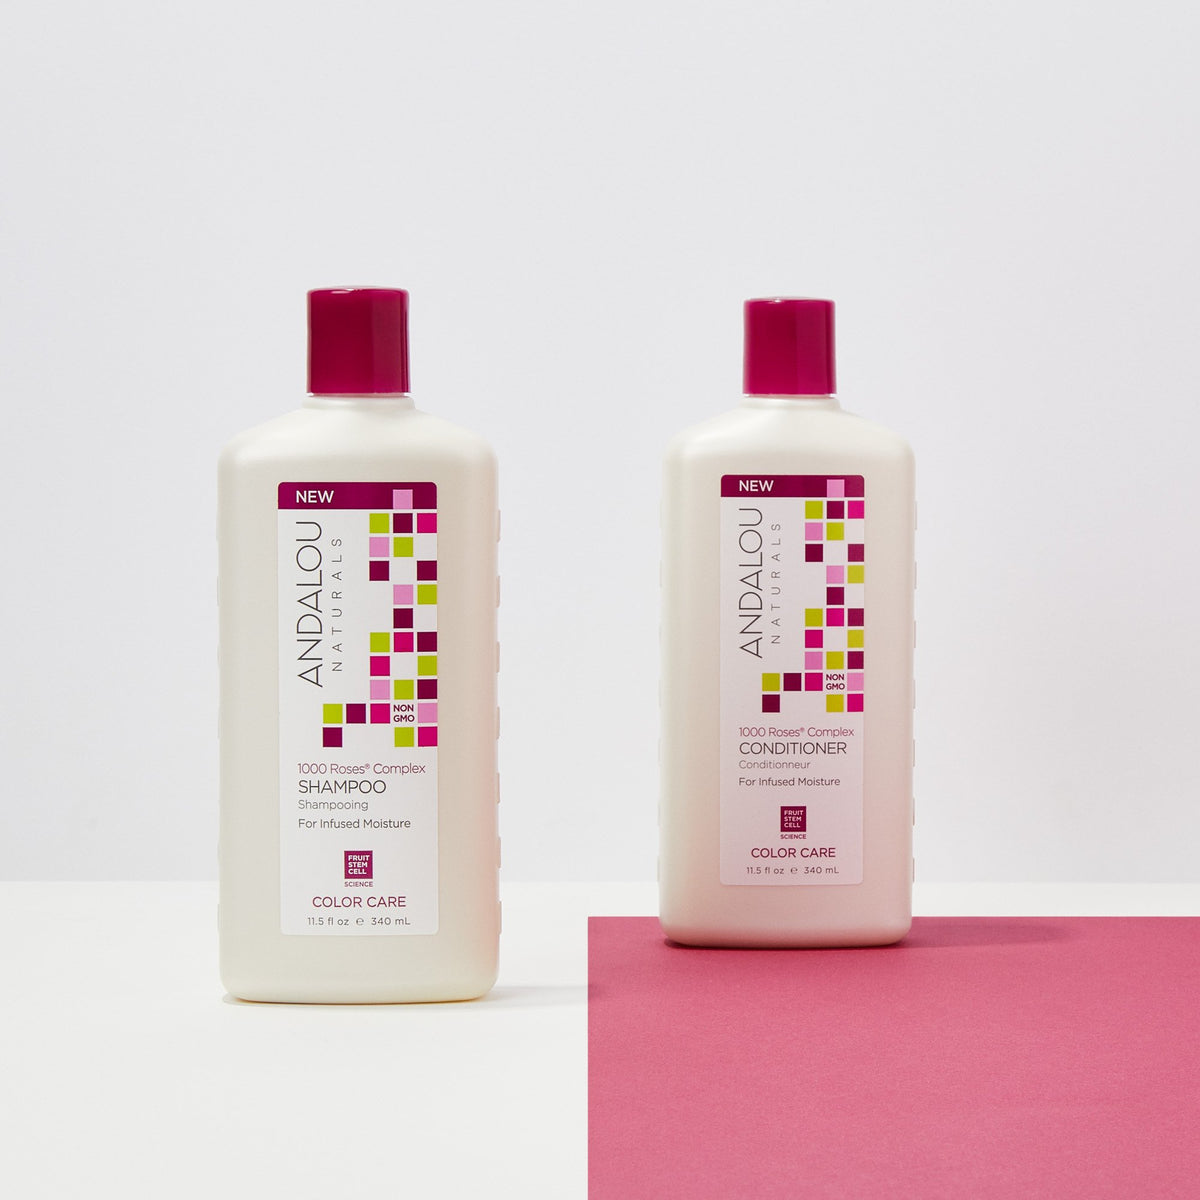 1000 Roses Complex Color Care Conditioner - Andalou Naturals US